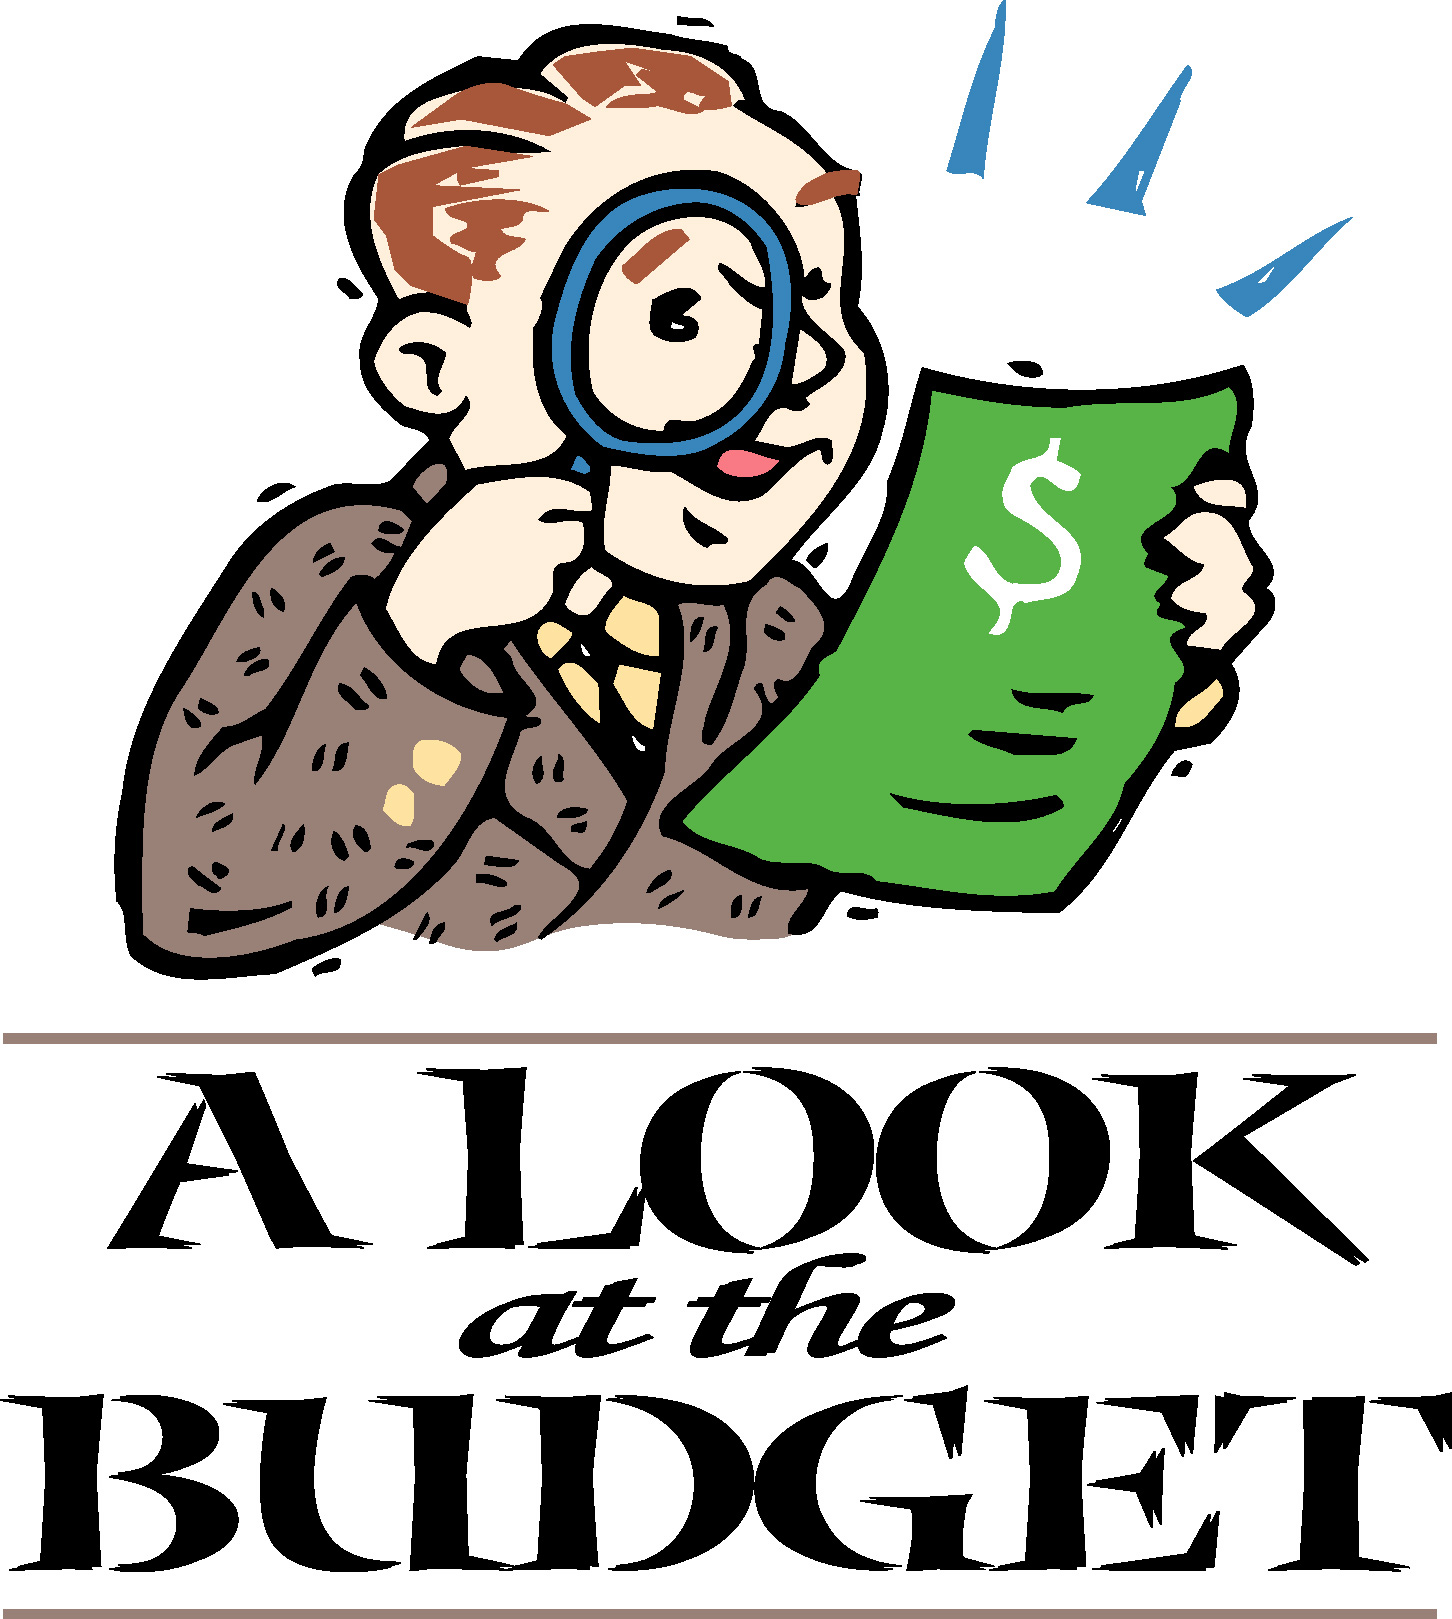 https://i2.wp.com/obama.net/wp-content/uploads/a-look-at-the-budget.jpg